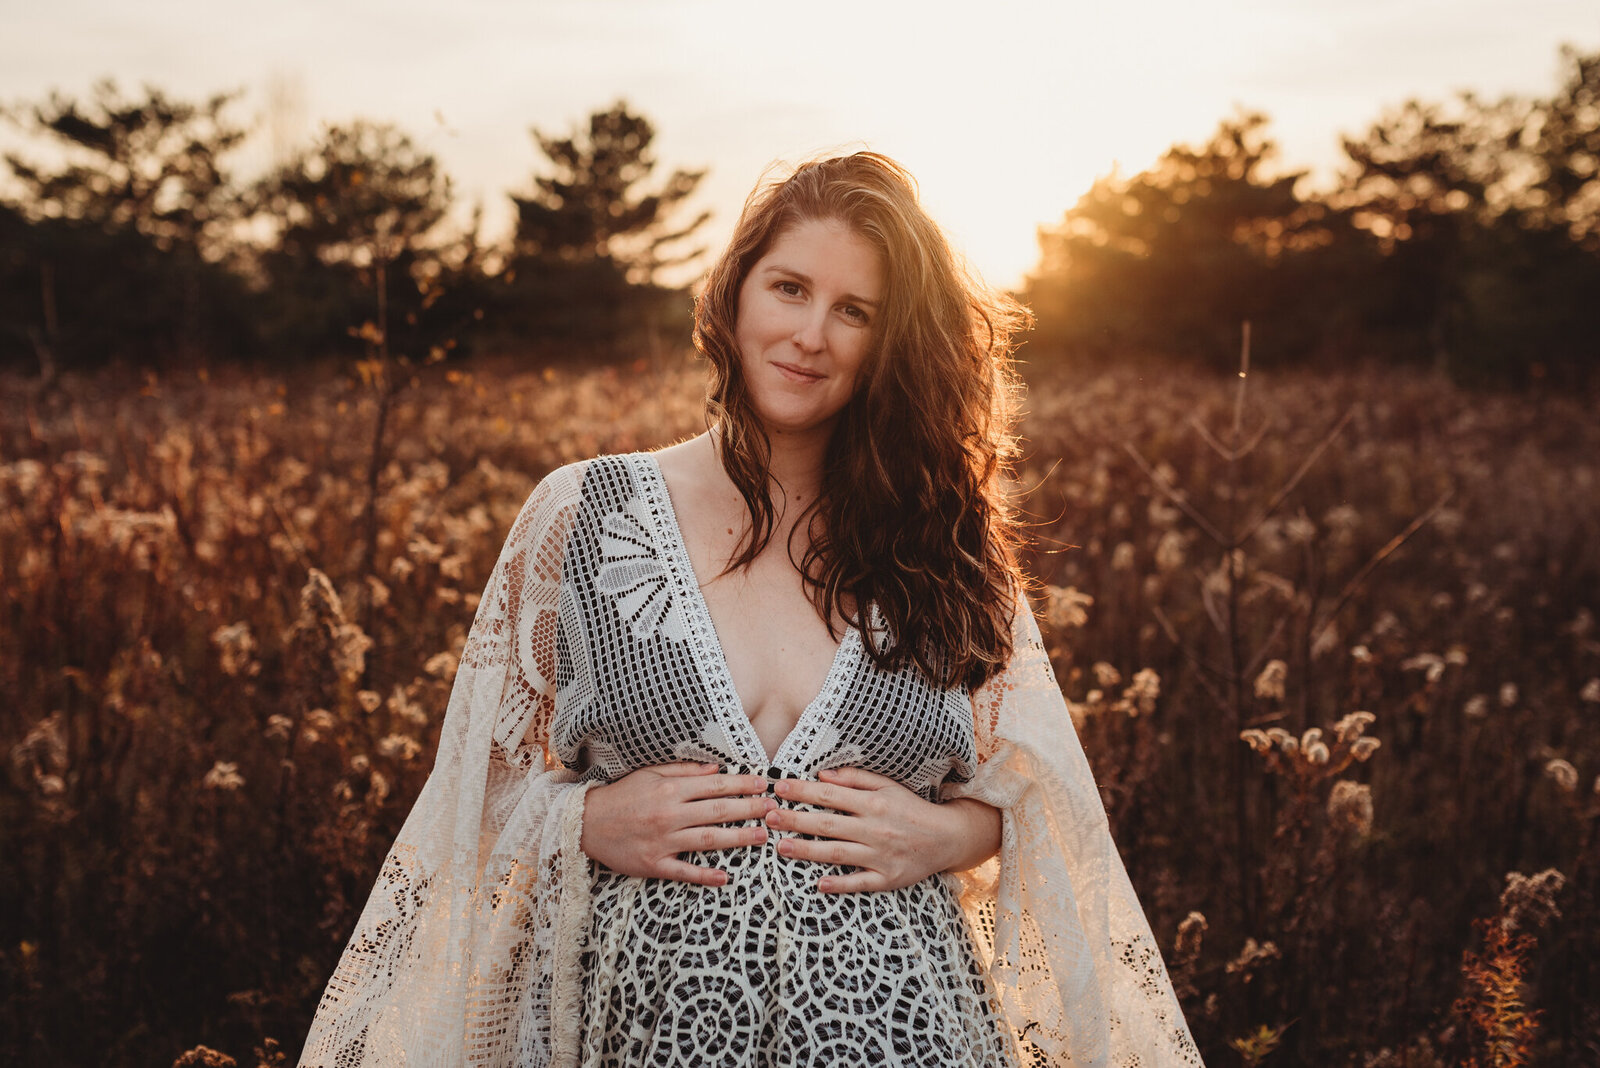 Pregnant woman at sunset in Oshawa